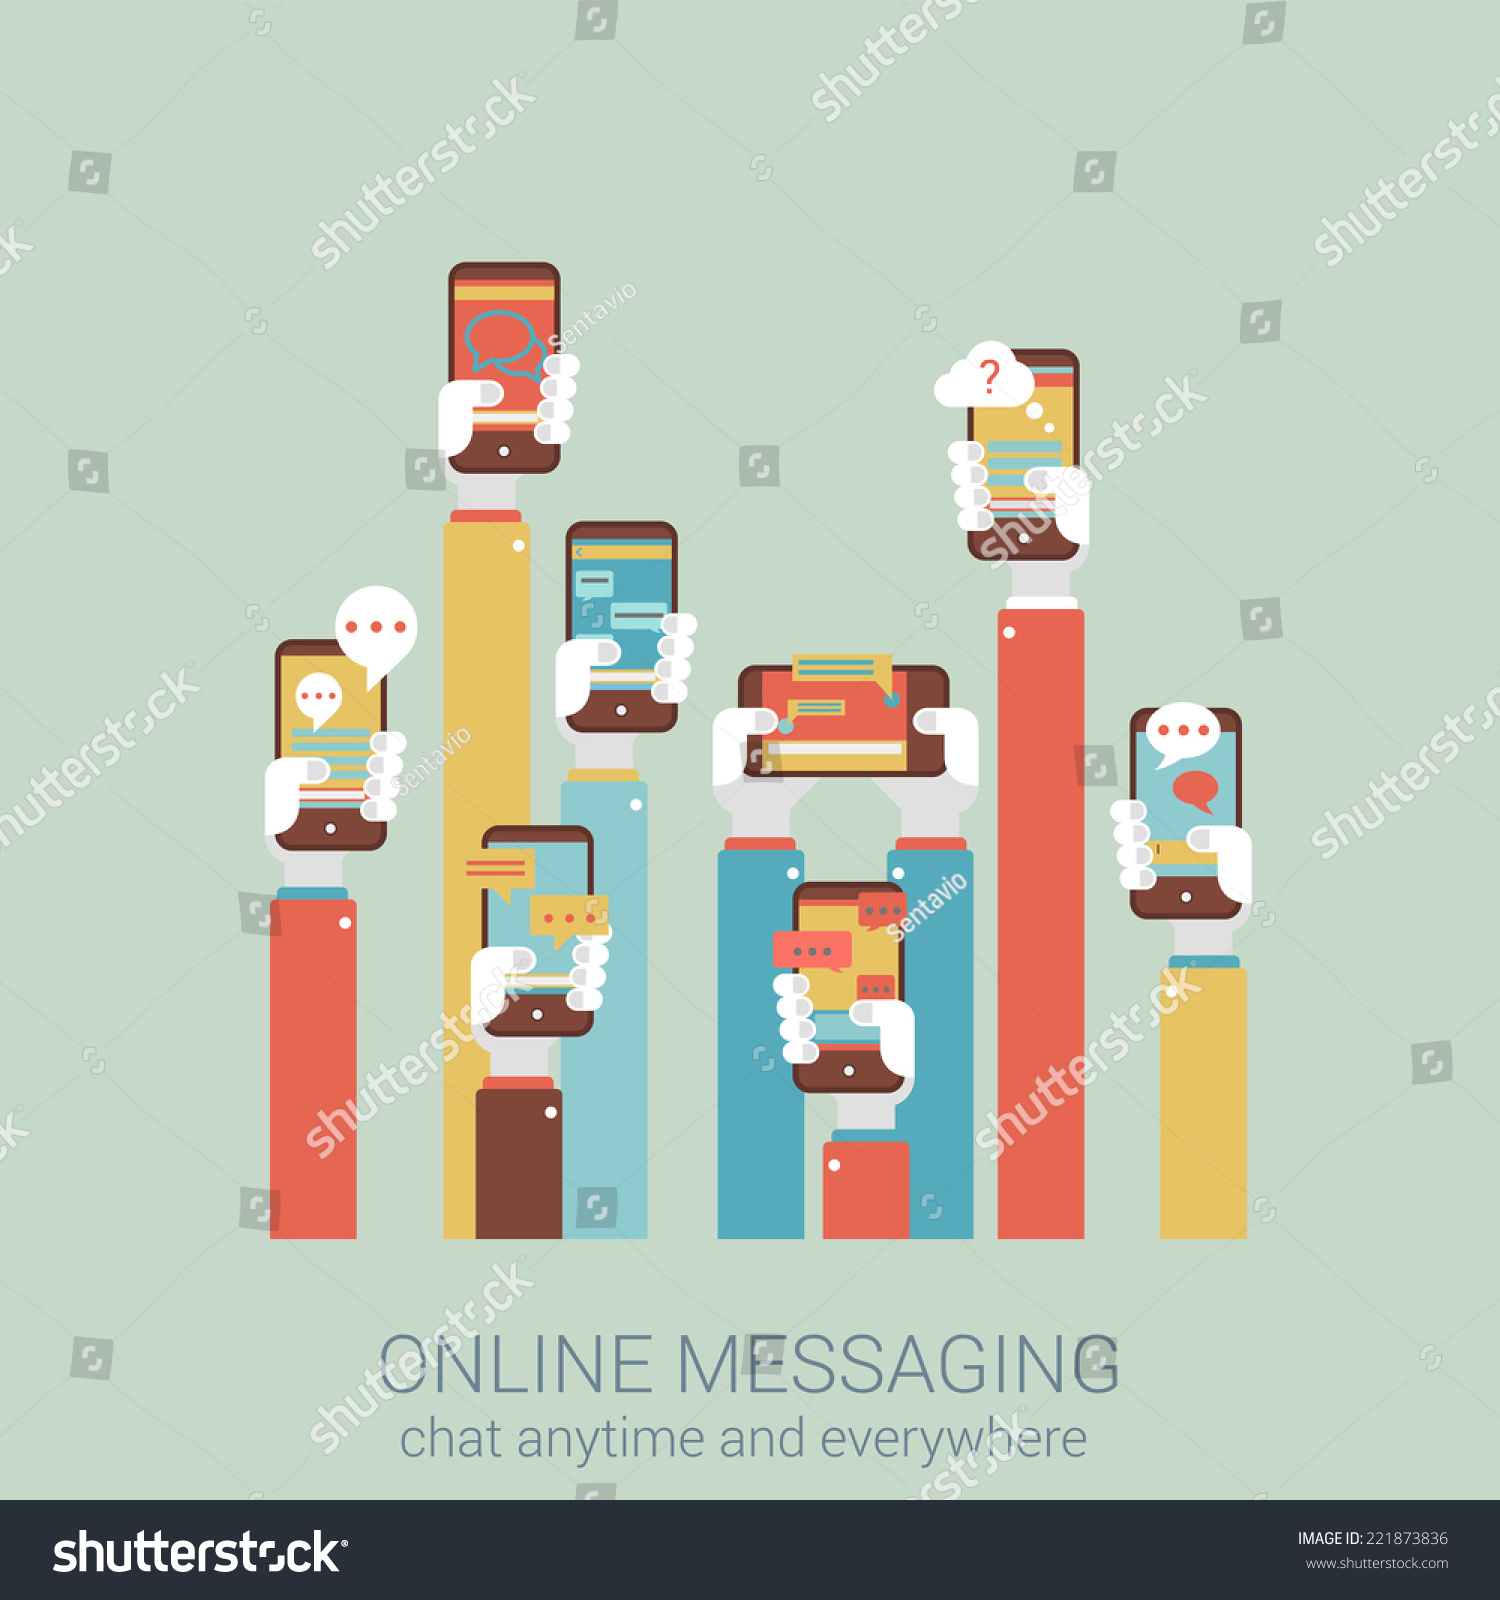 Flat Style Design Vector Illustration Online Messaging Mobile App Concept Collage Of Hands Holding Touch